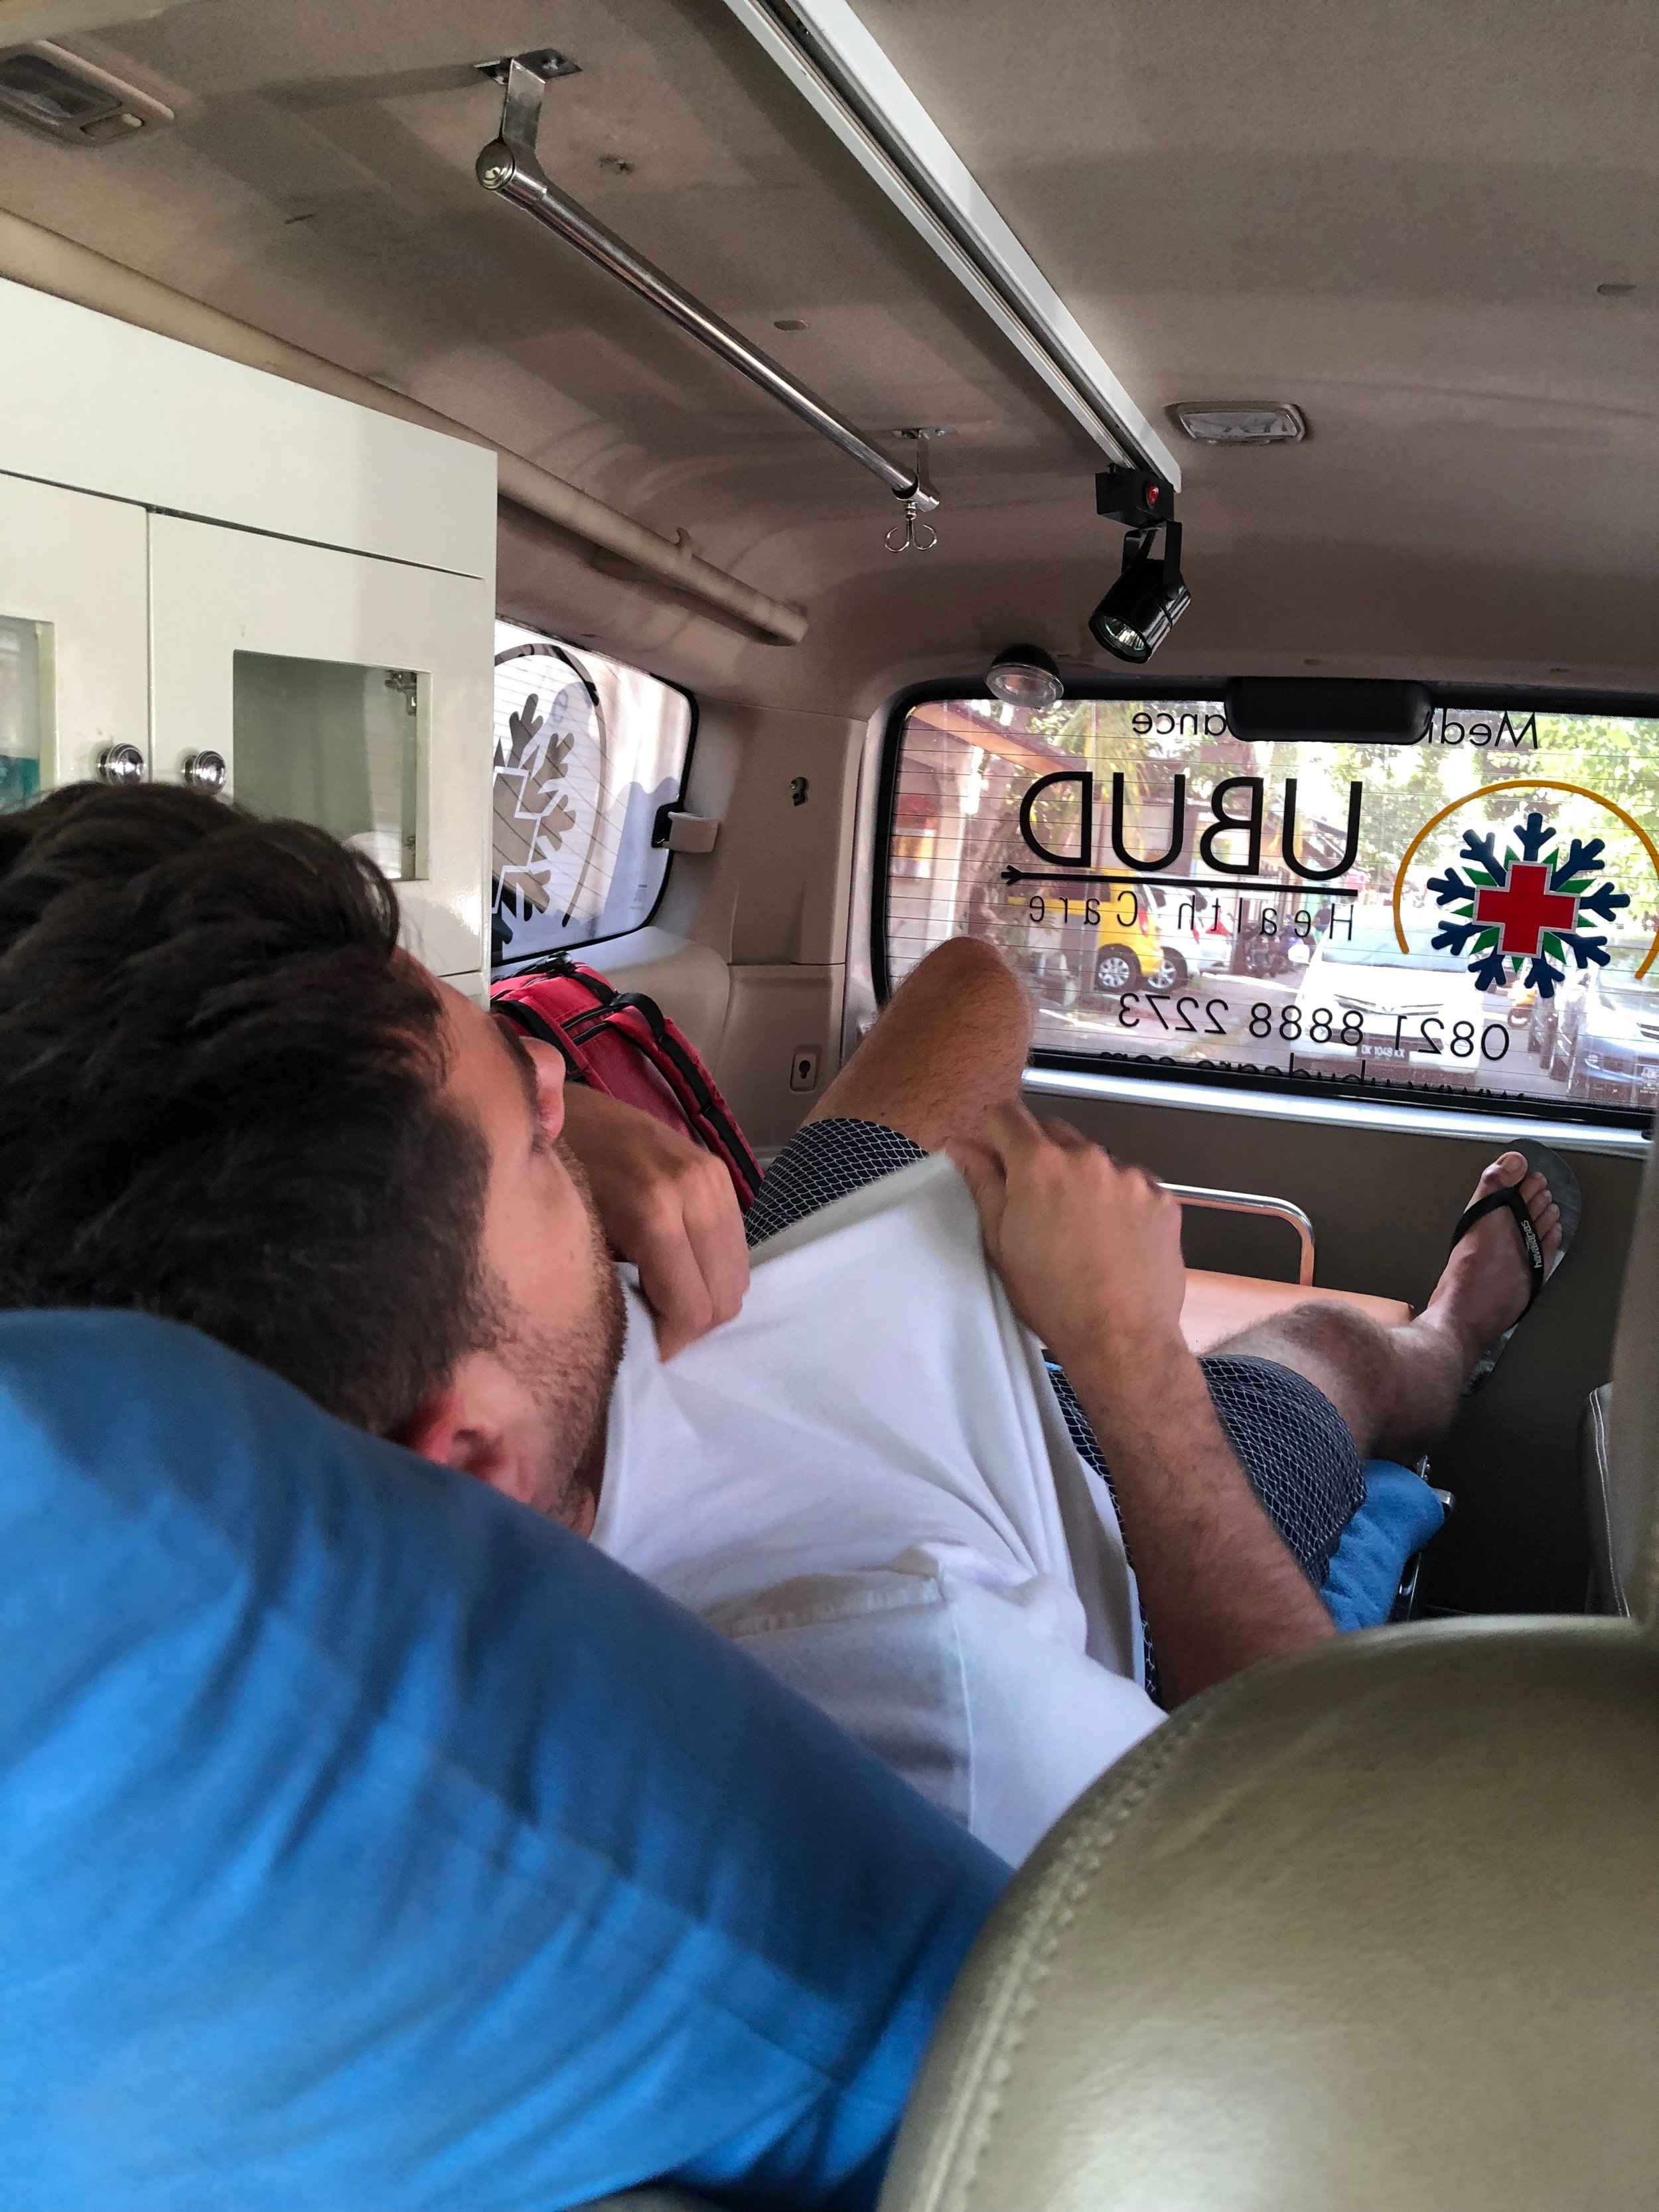 My boyfriend in an ambulance in Ubud on his way to the hospital